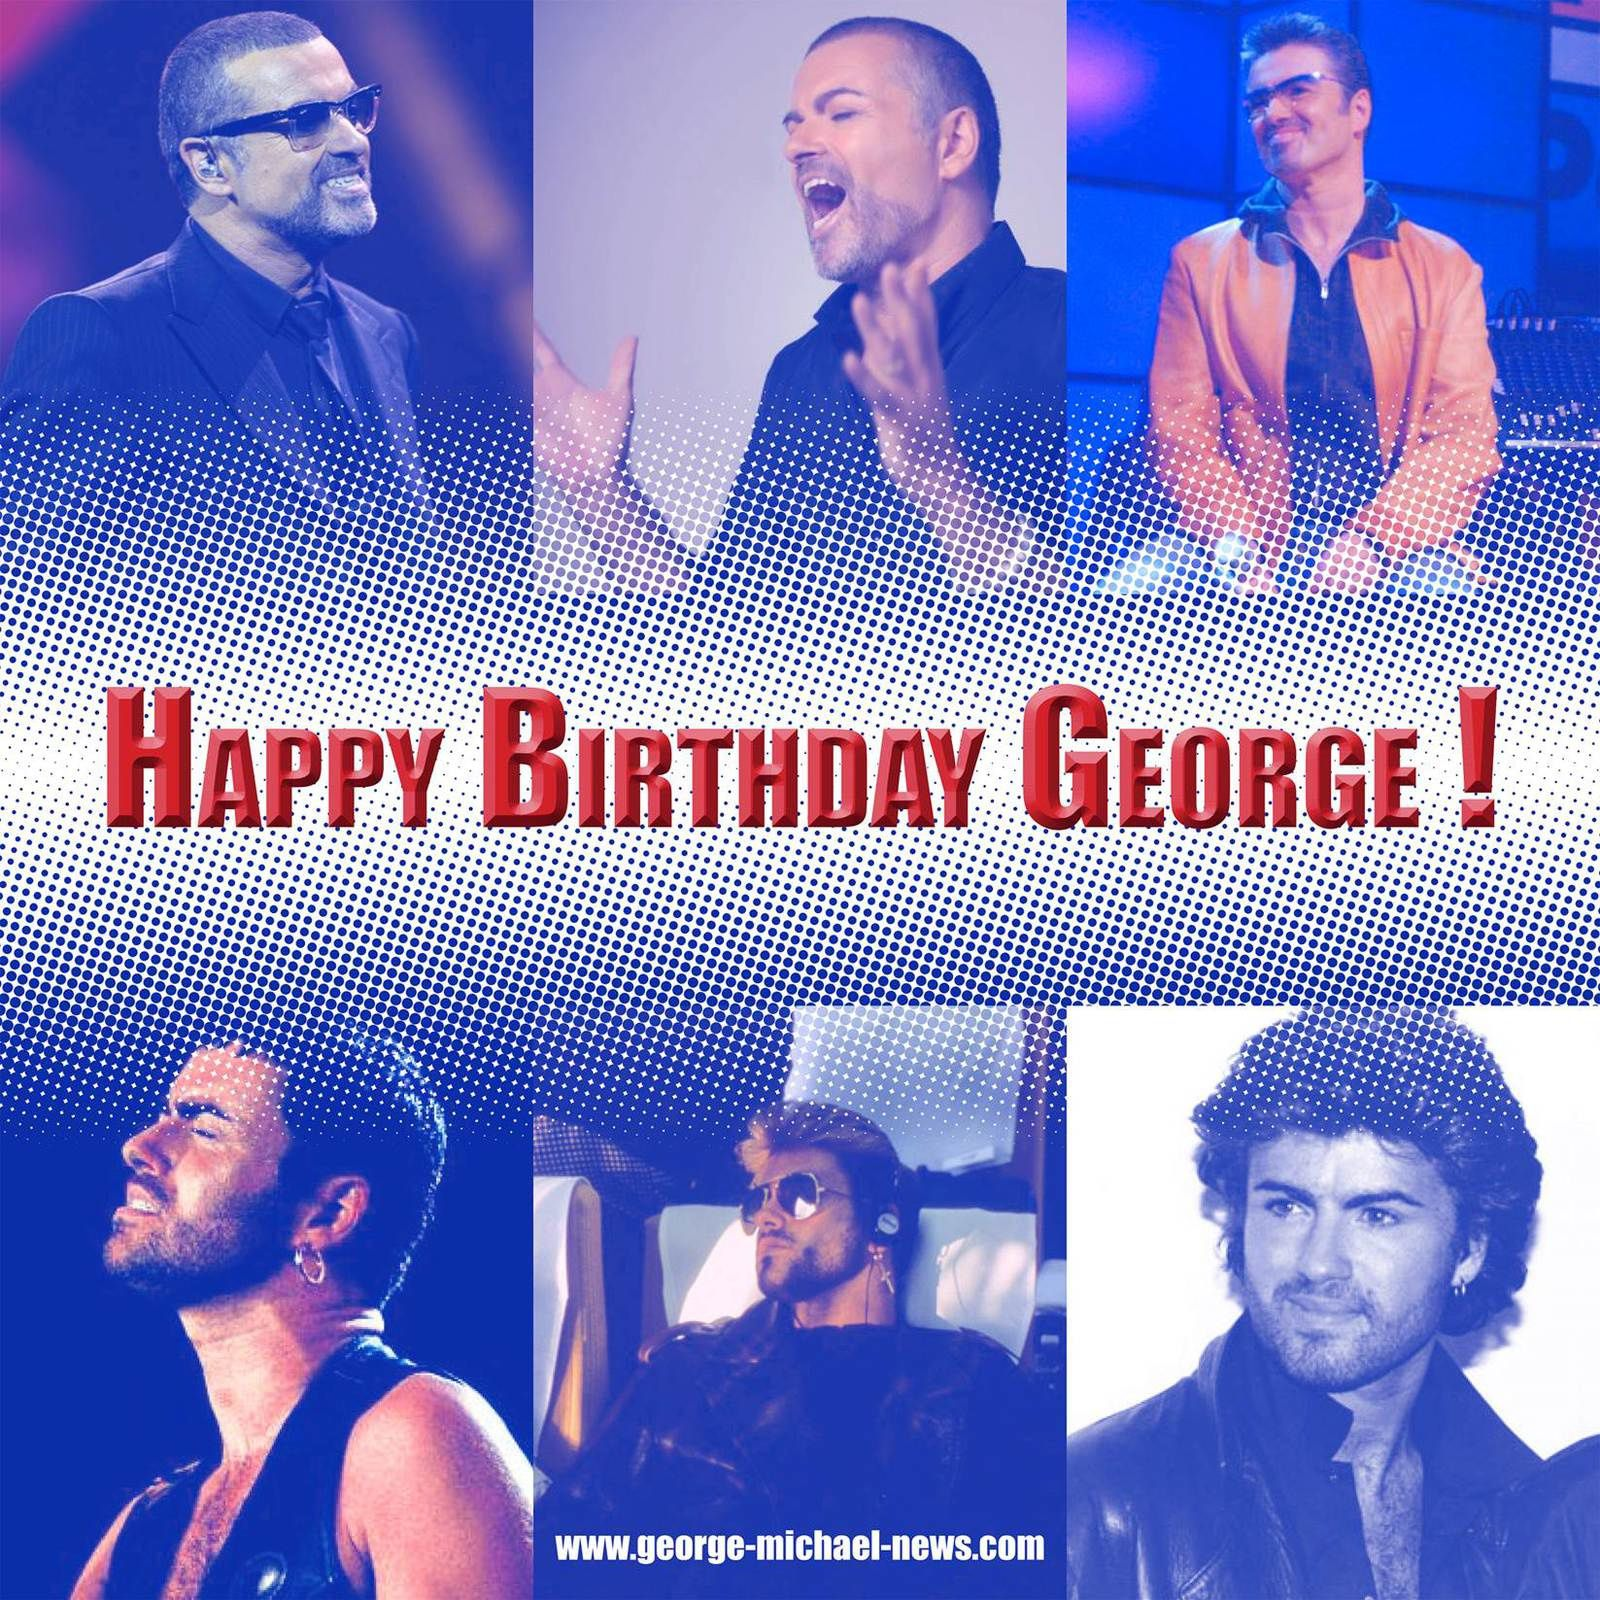 HAPPY BIRTHDAY DEAR GEORGE !